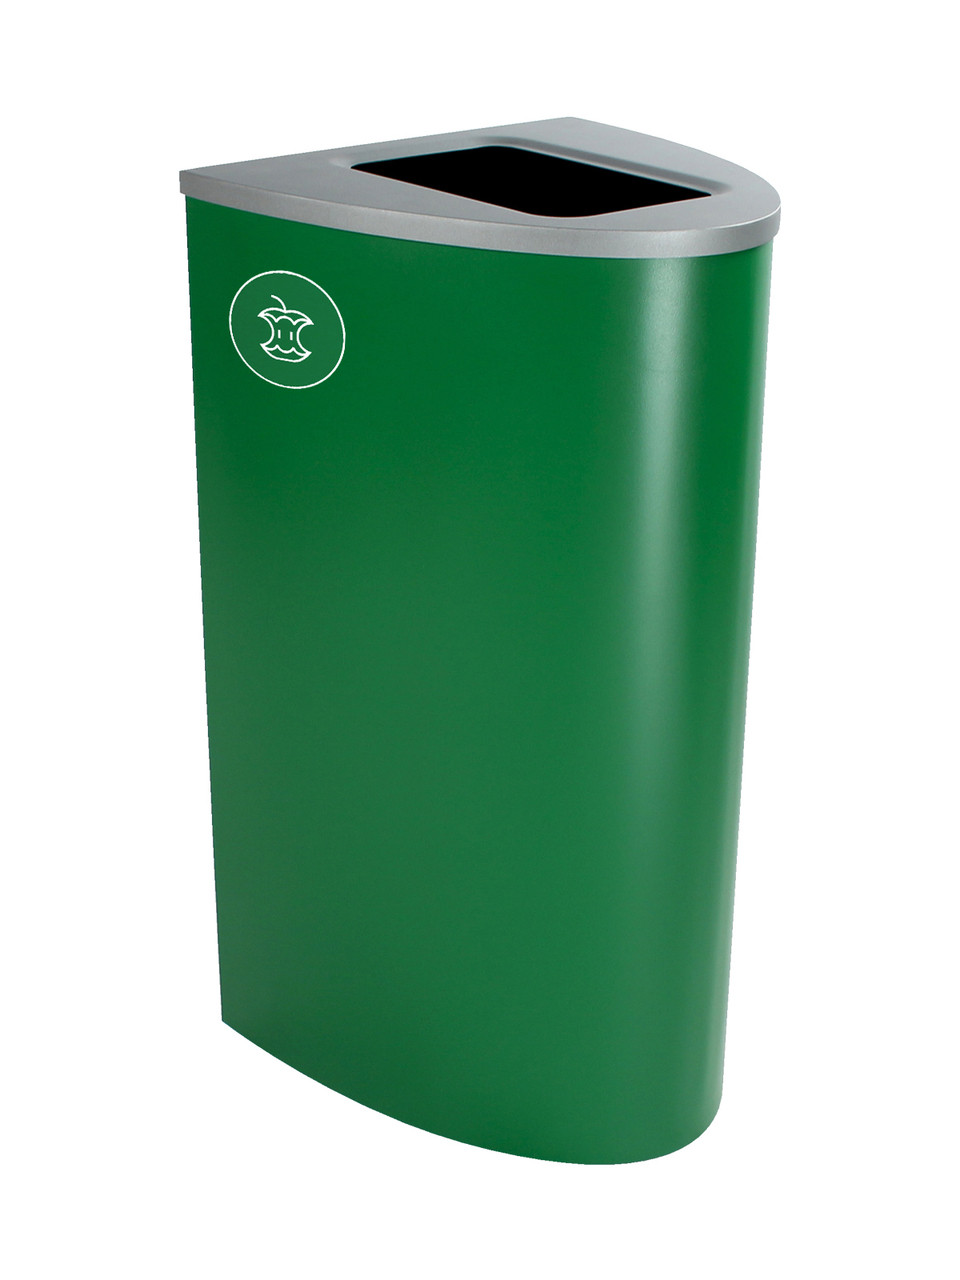 22 Gallon Steel Spectrum Ellipse Compost Bin Dark Green 8107011-4